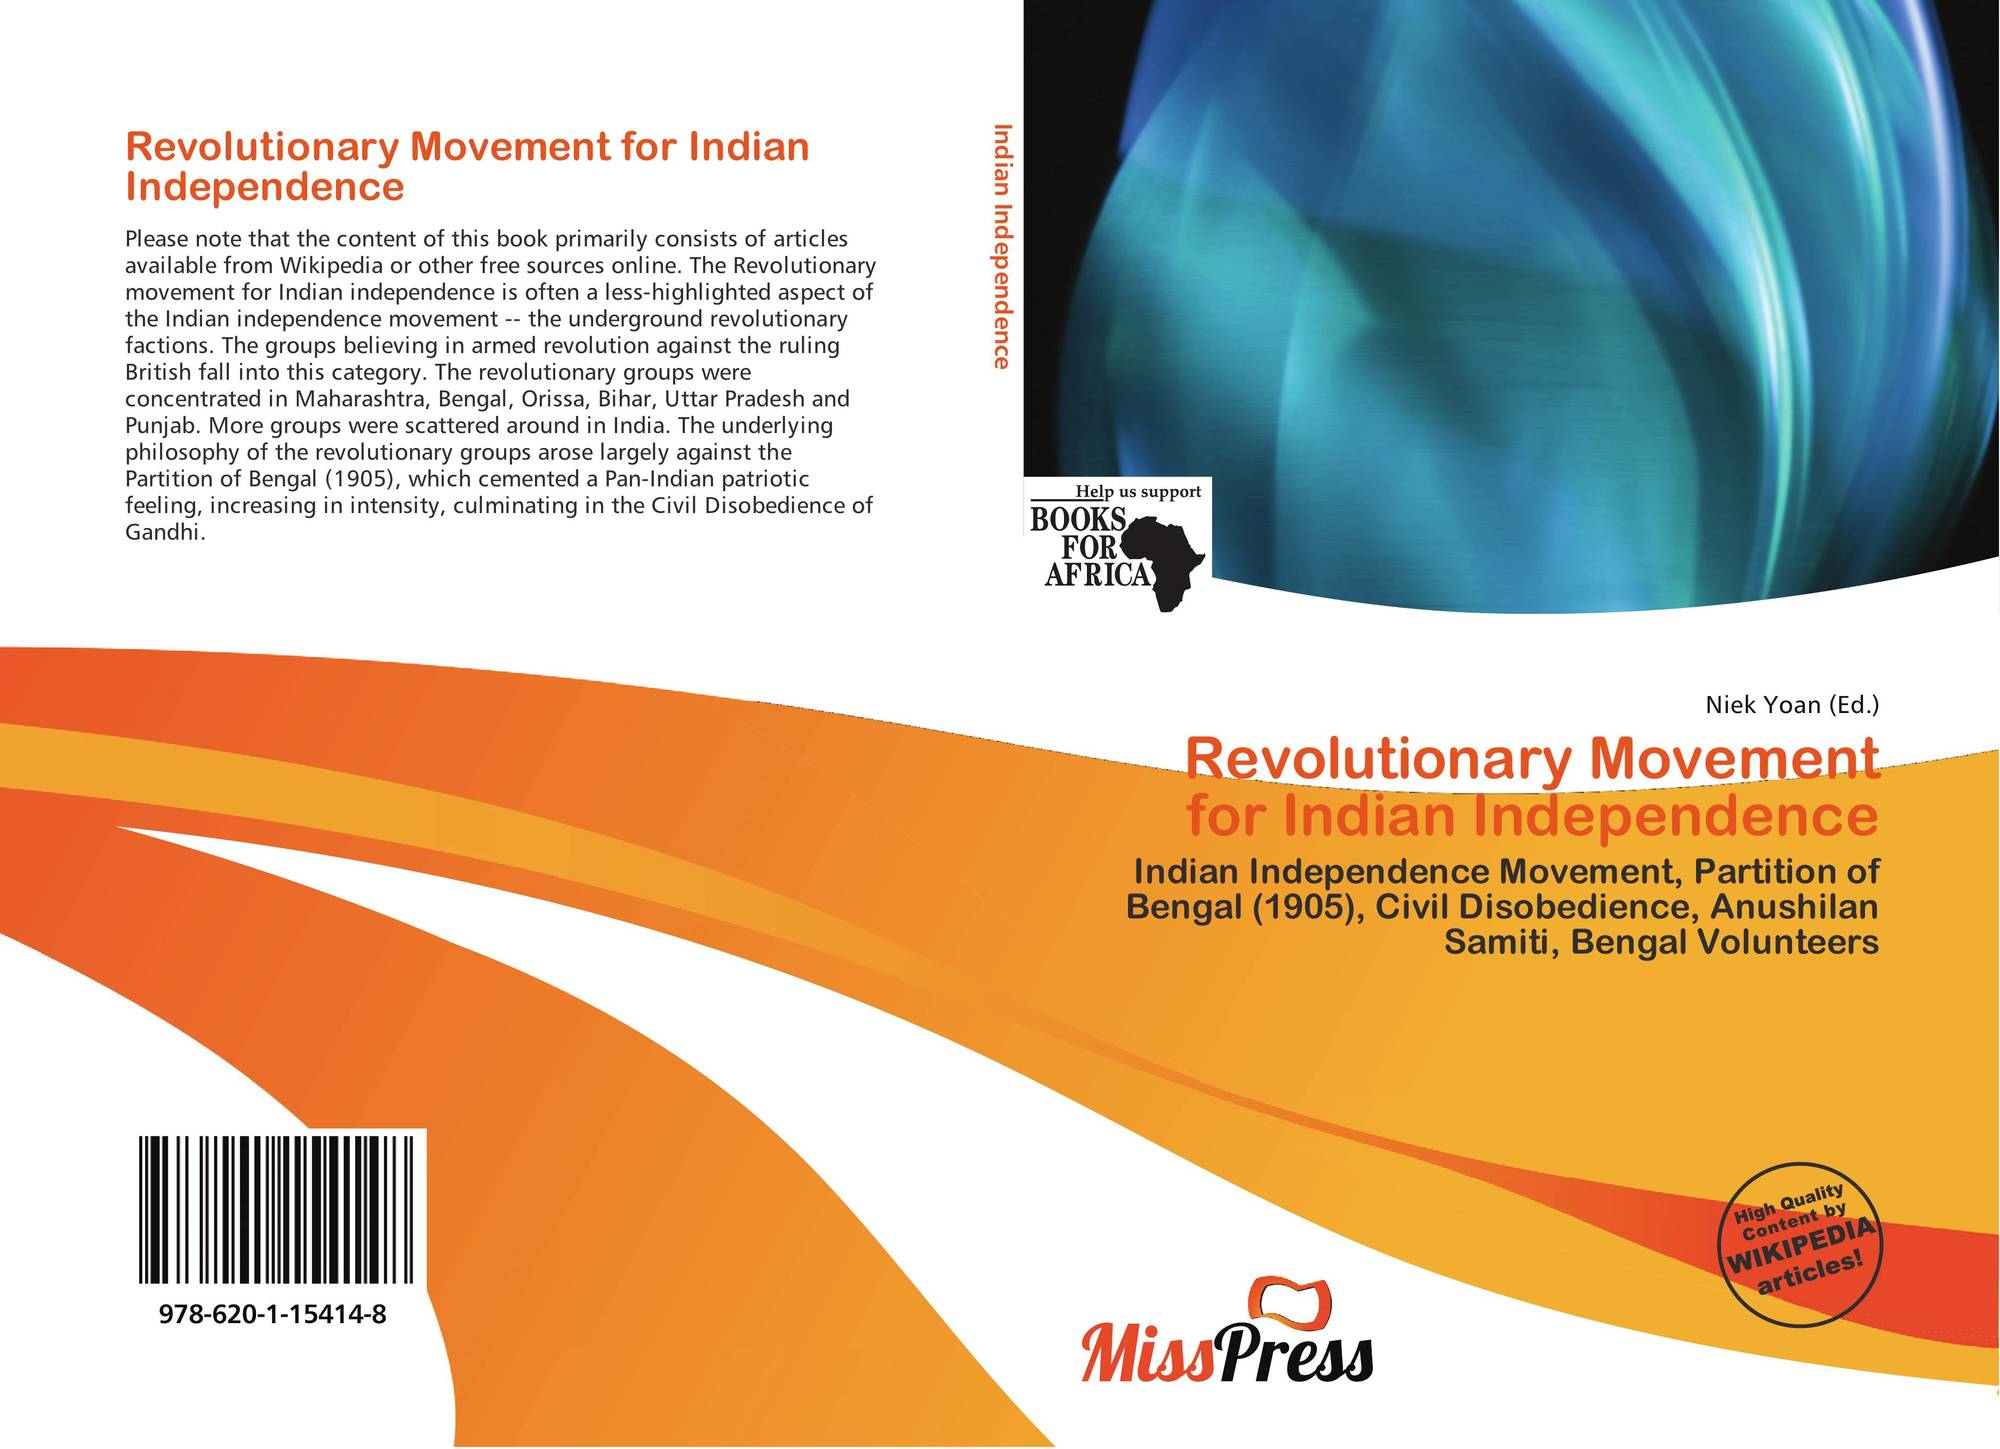 Revolutionary Movement for Indian Independence, 978-620-1